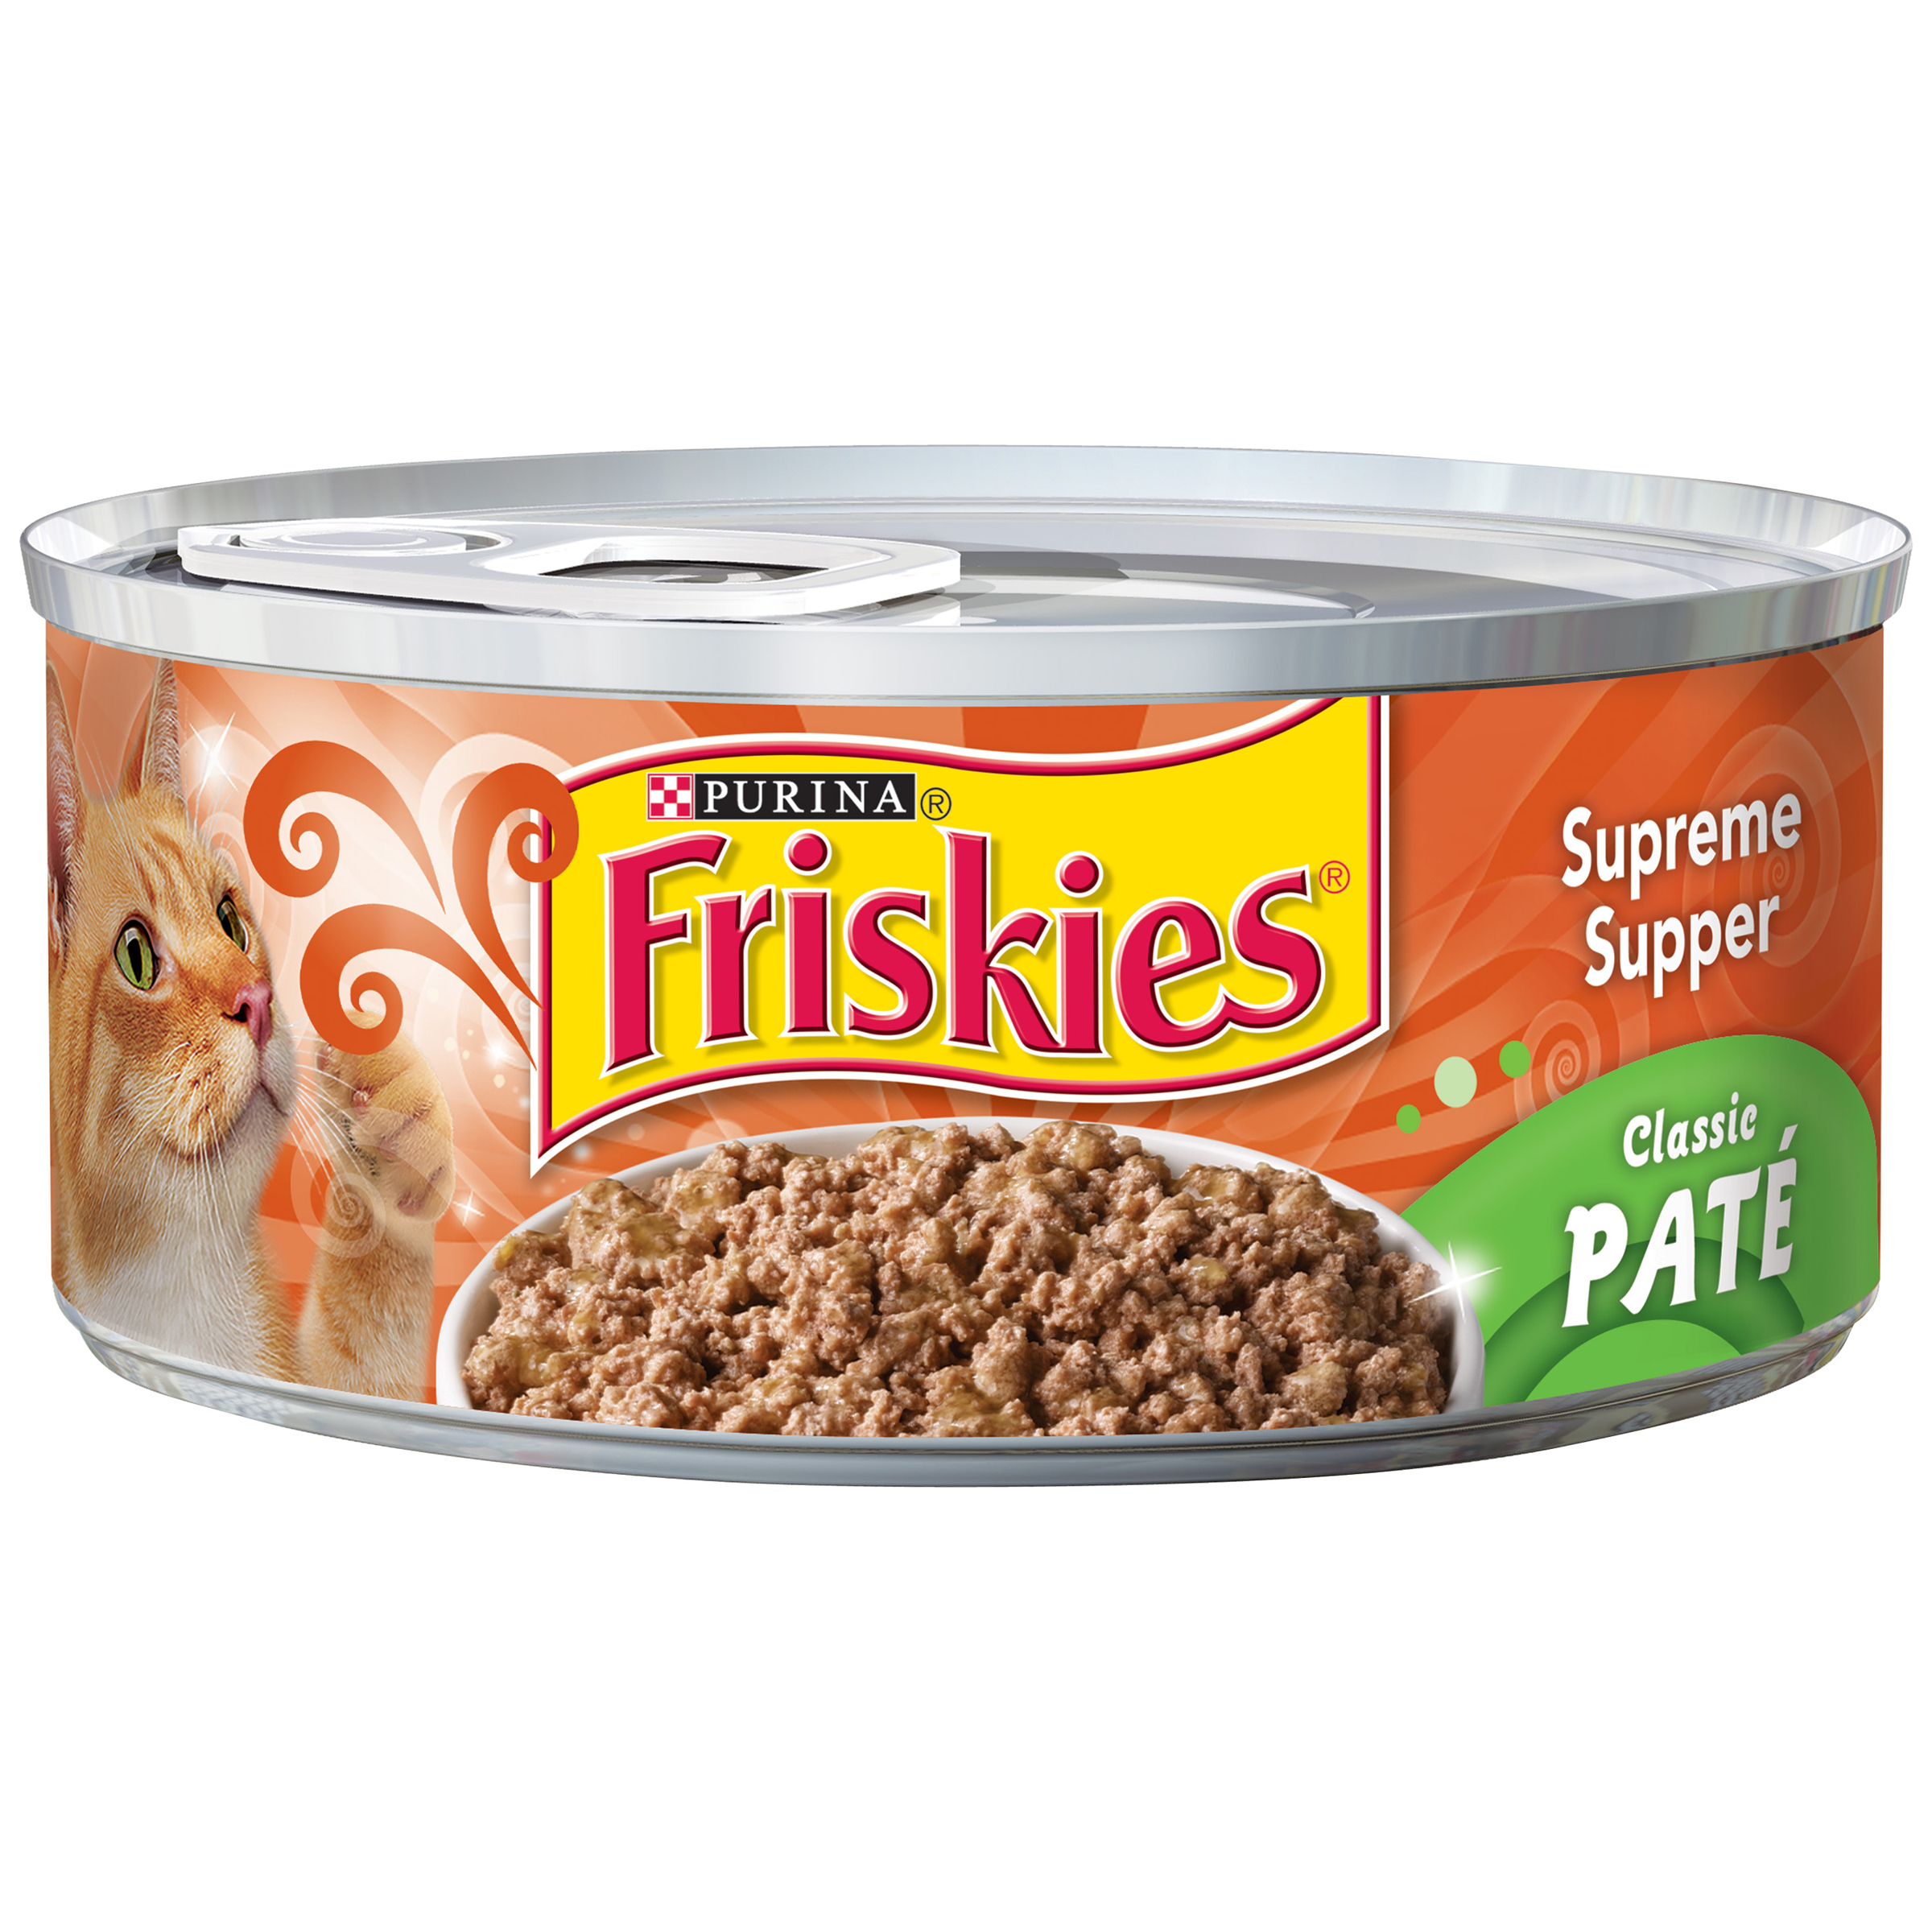 Purina Friskies Classic Pate Supreme Supper Cat Food 5.5 oz. Can